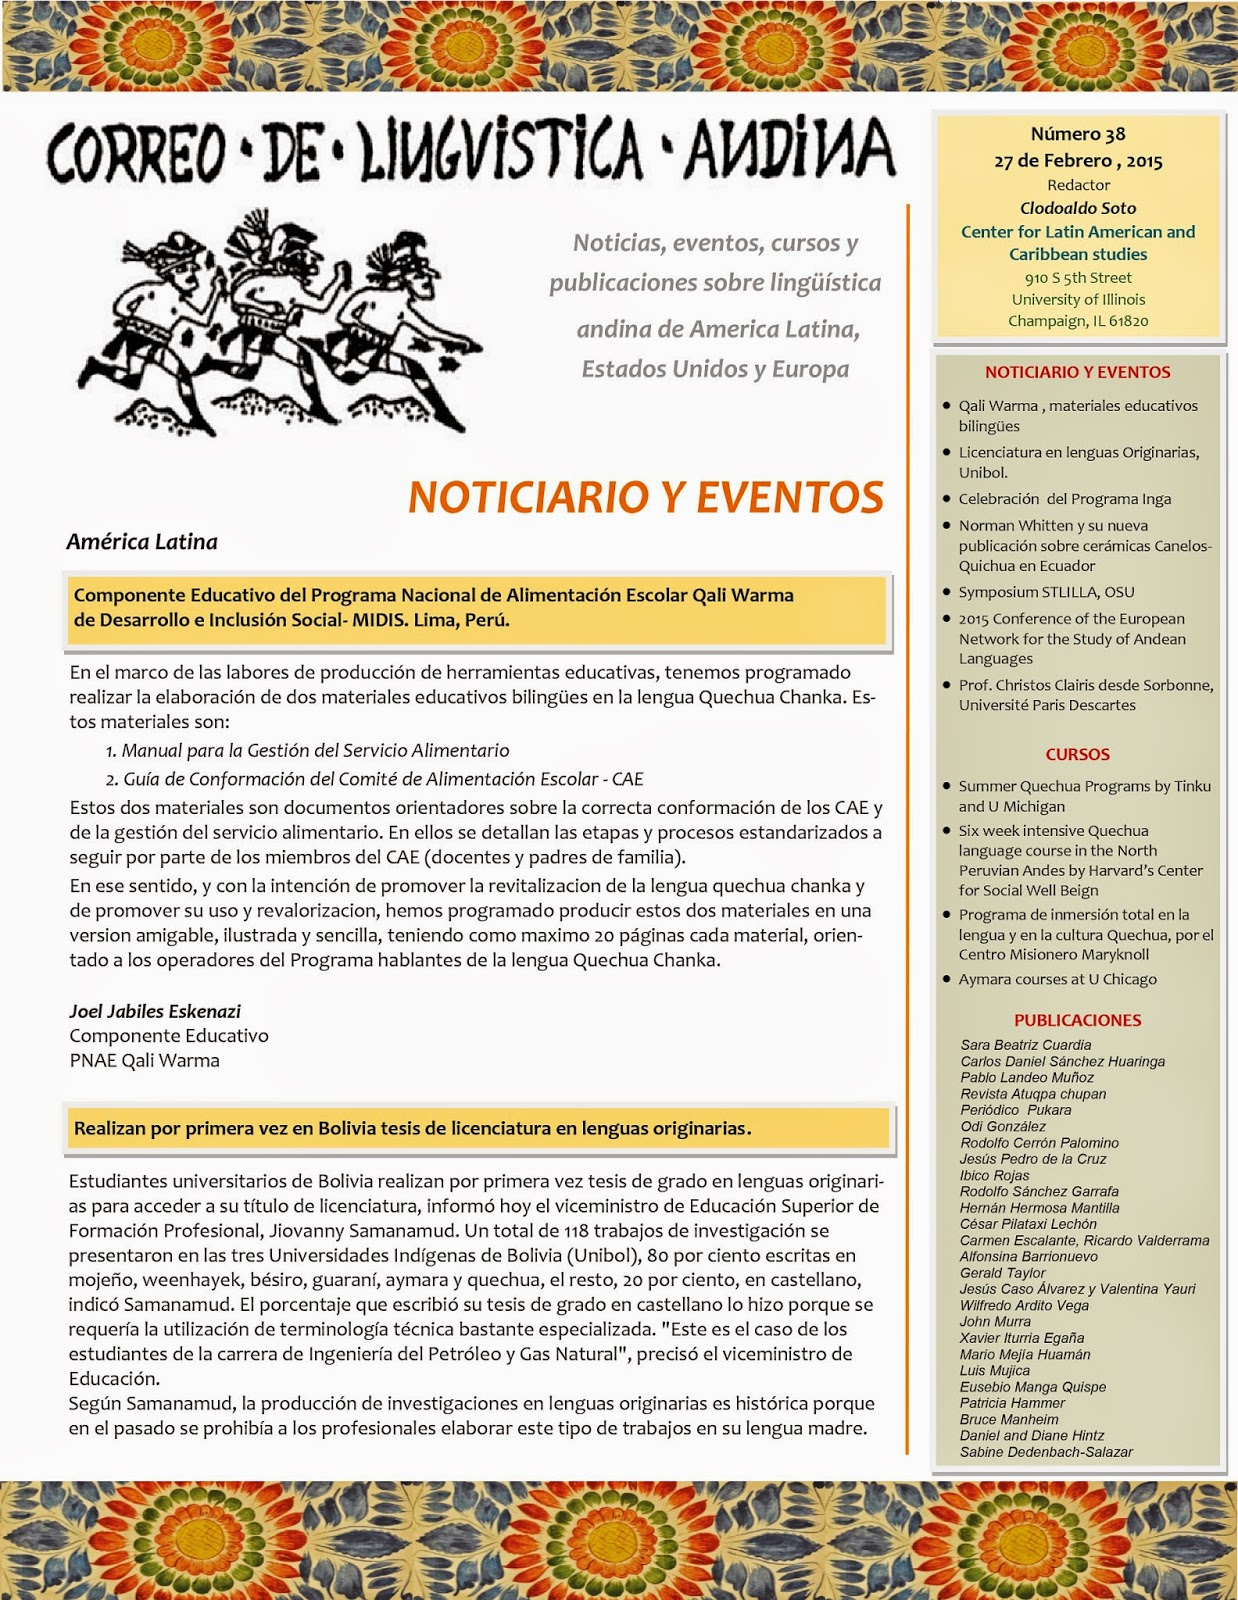 http://www.clacs.illinois.edu/quechua/documents/CorreodeLinguisticaAndina38.pdf